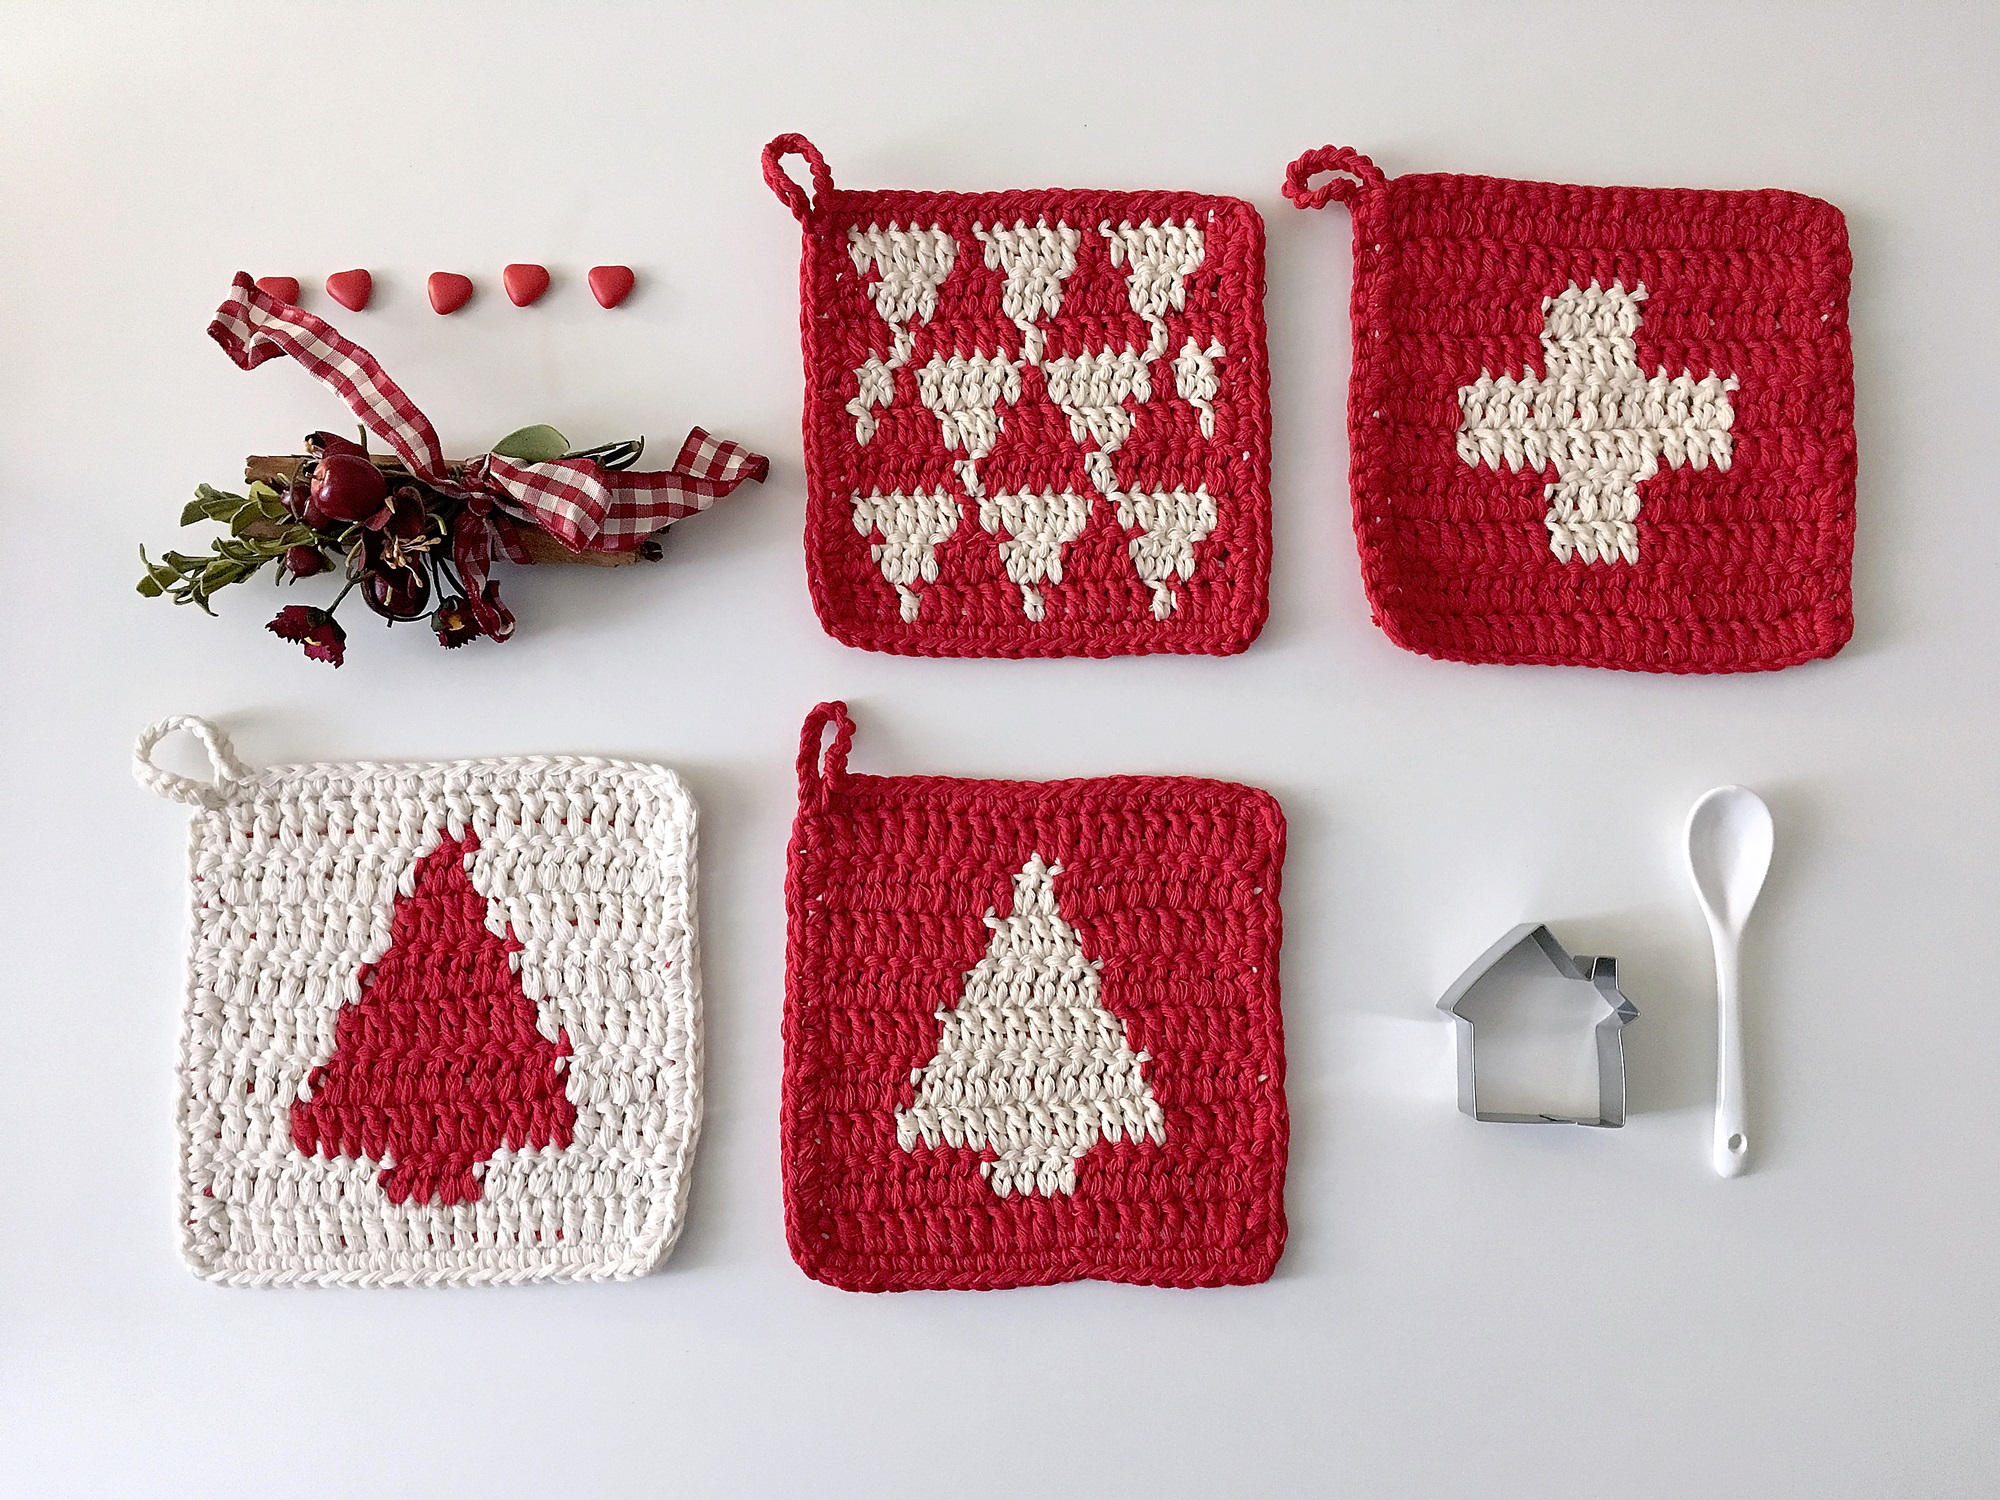 Bettaknit: Christmas crochet pot holders in cotton